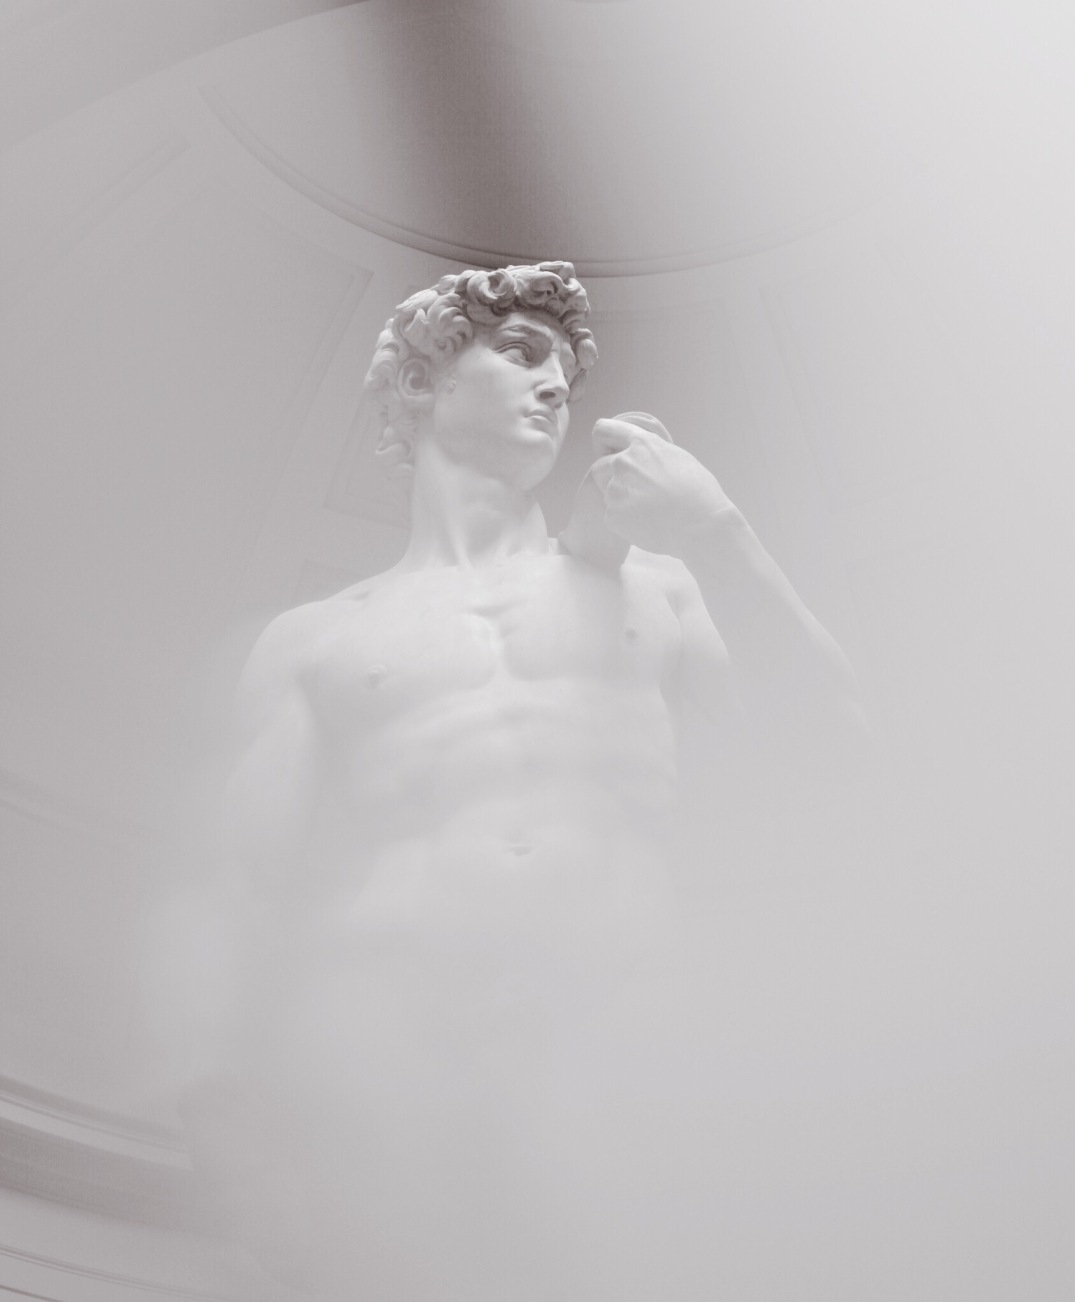 David, Michelangelo, Firenze, Italy